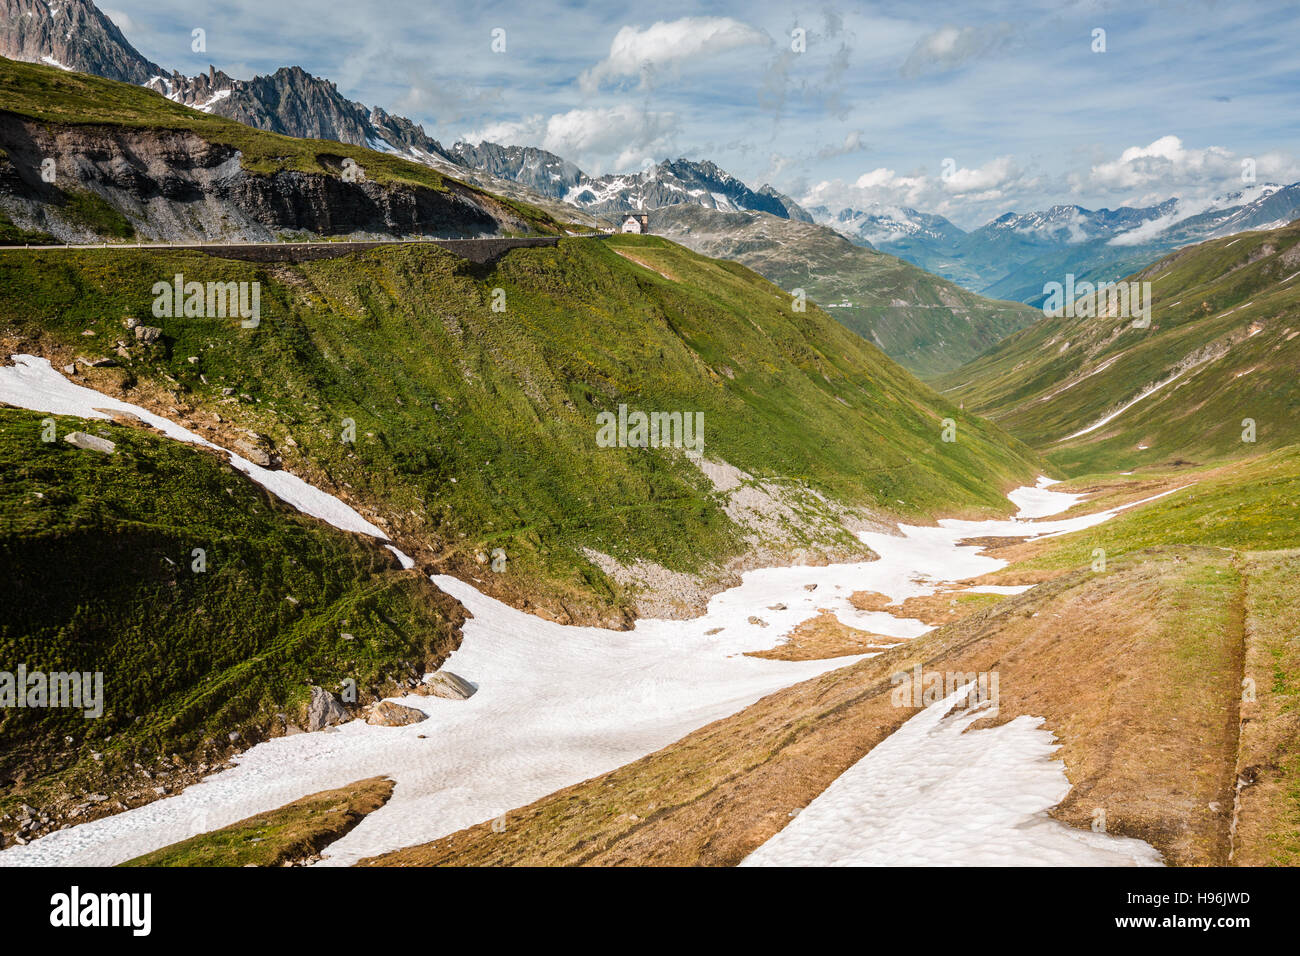 Valley near top of Furka pass, road on the left, Switzerland Stock Photo